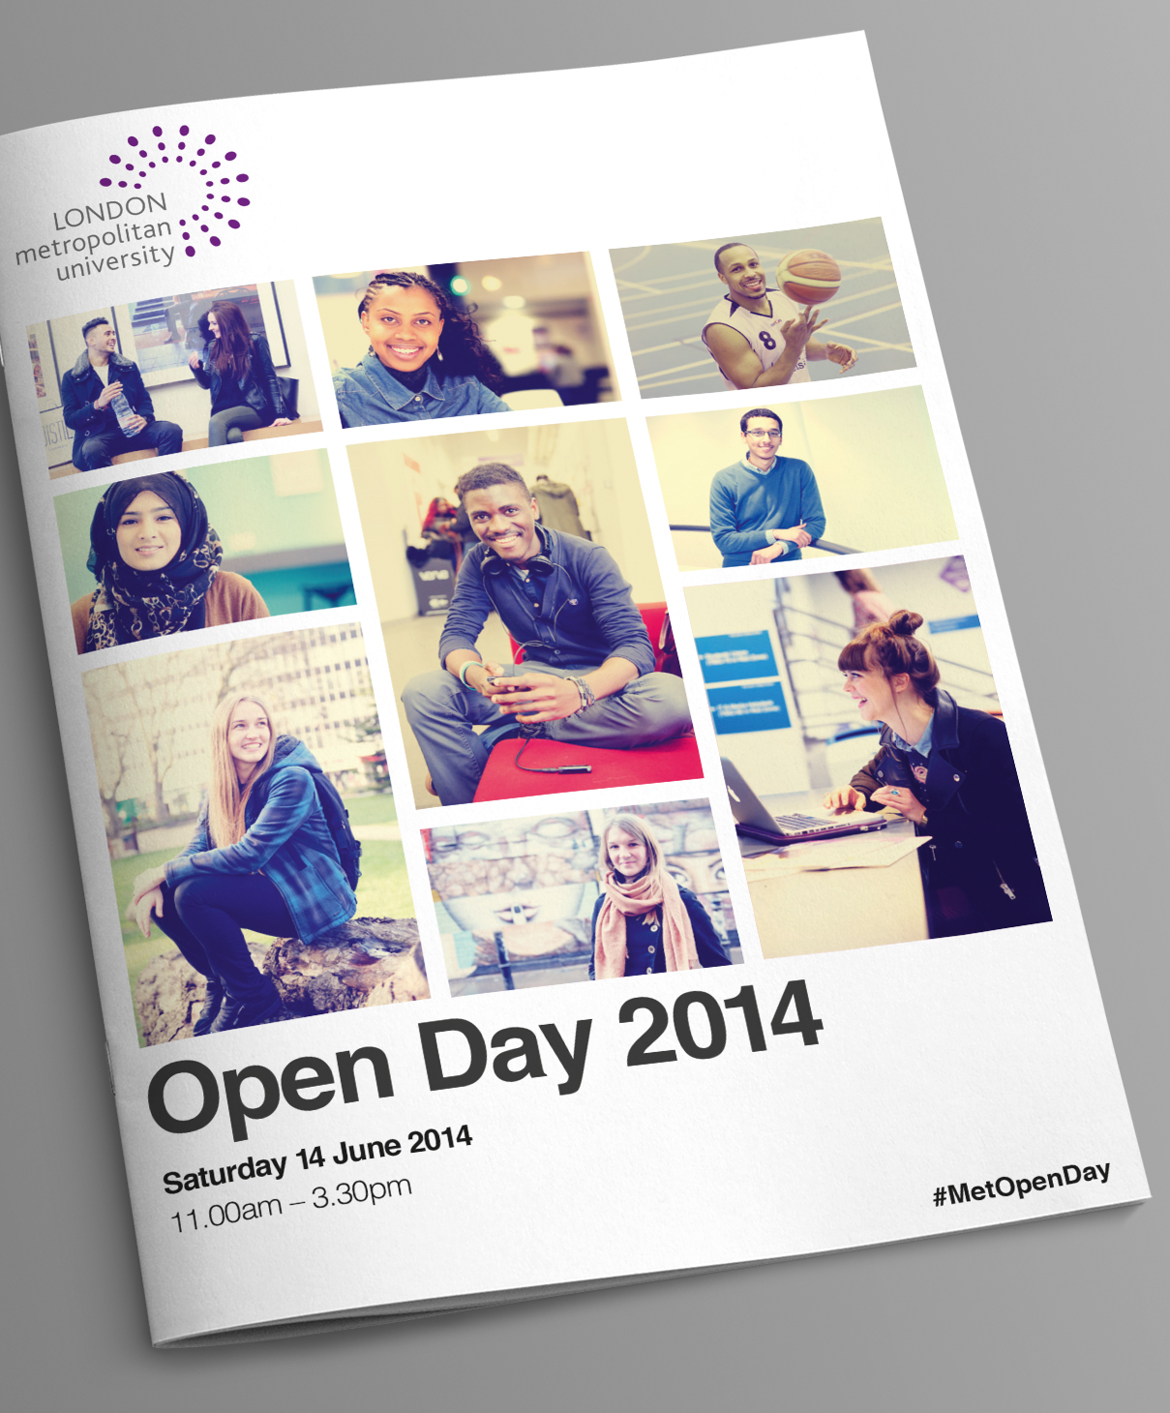 London Metropolitan University Open Day